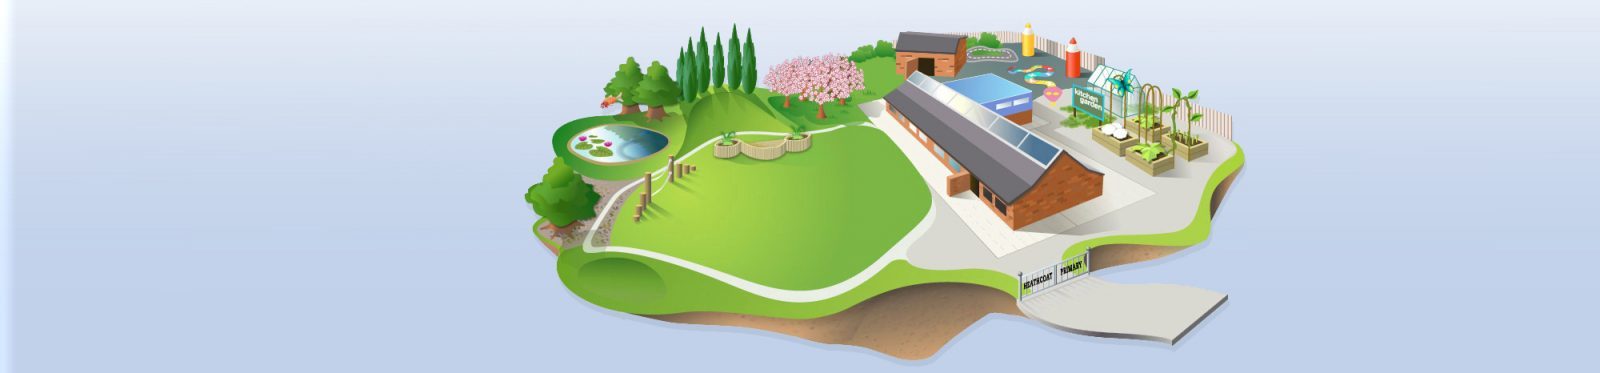 Animation of the school grounds